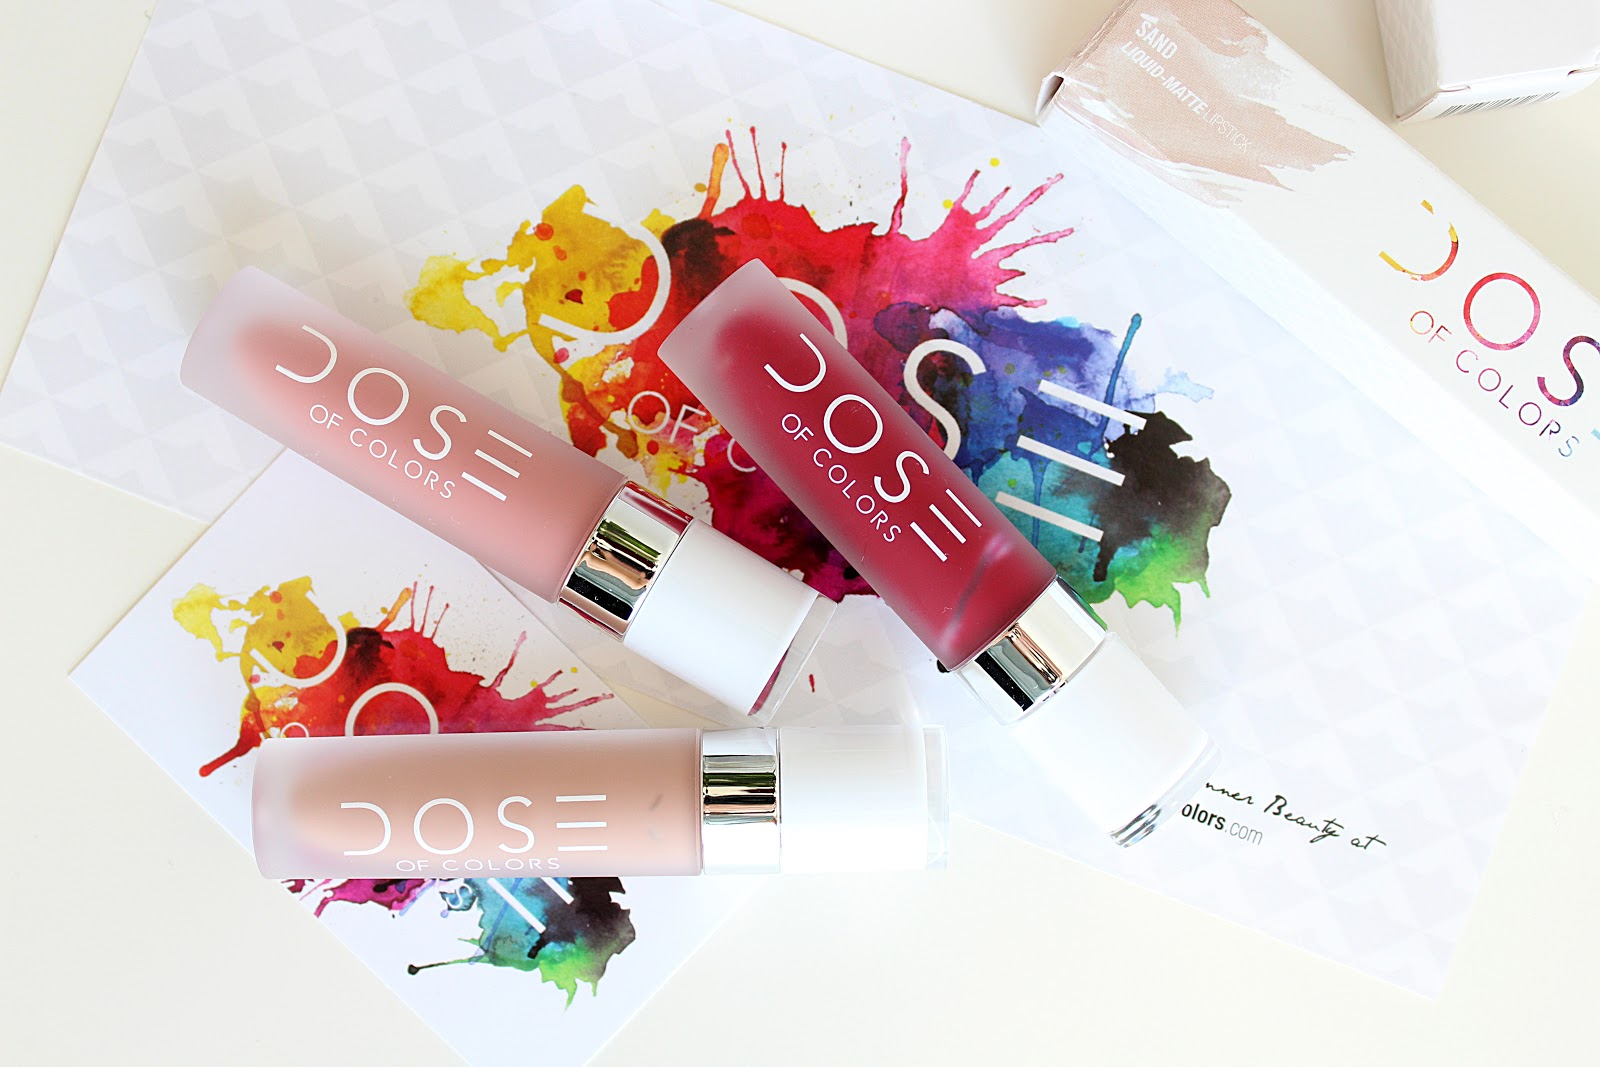 Dose Of Colors Liquid Lipstick Review and Swatches